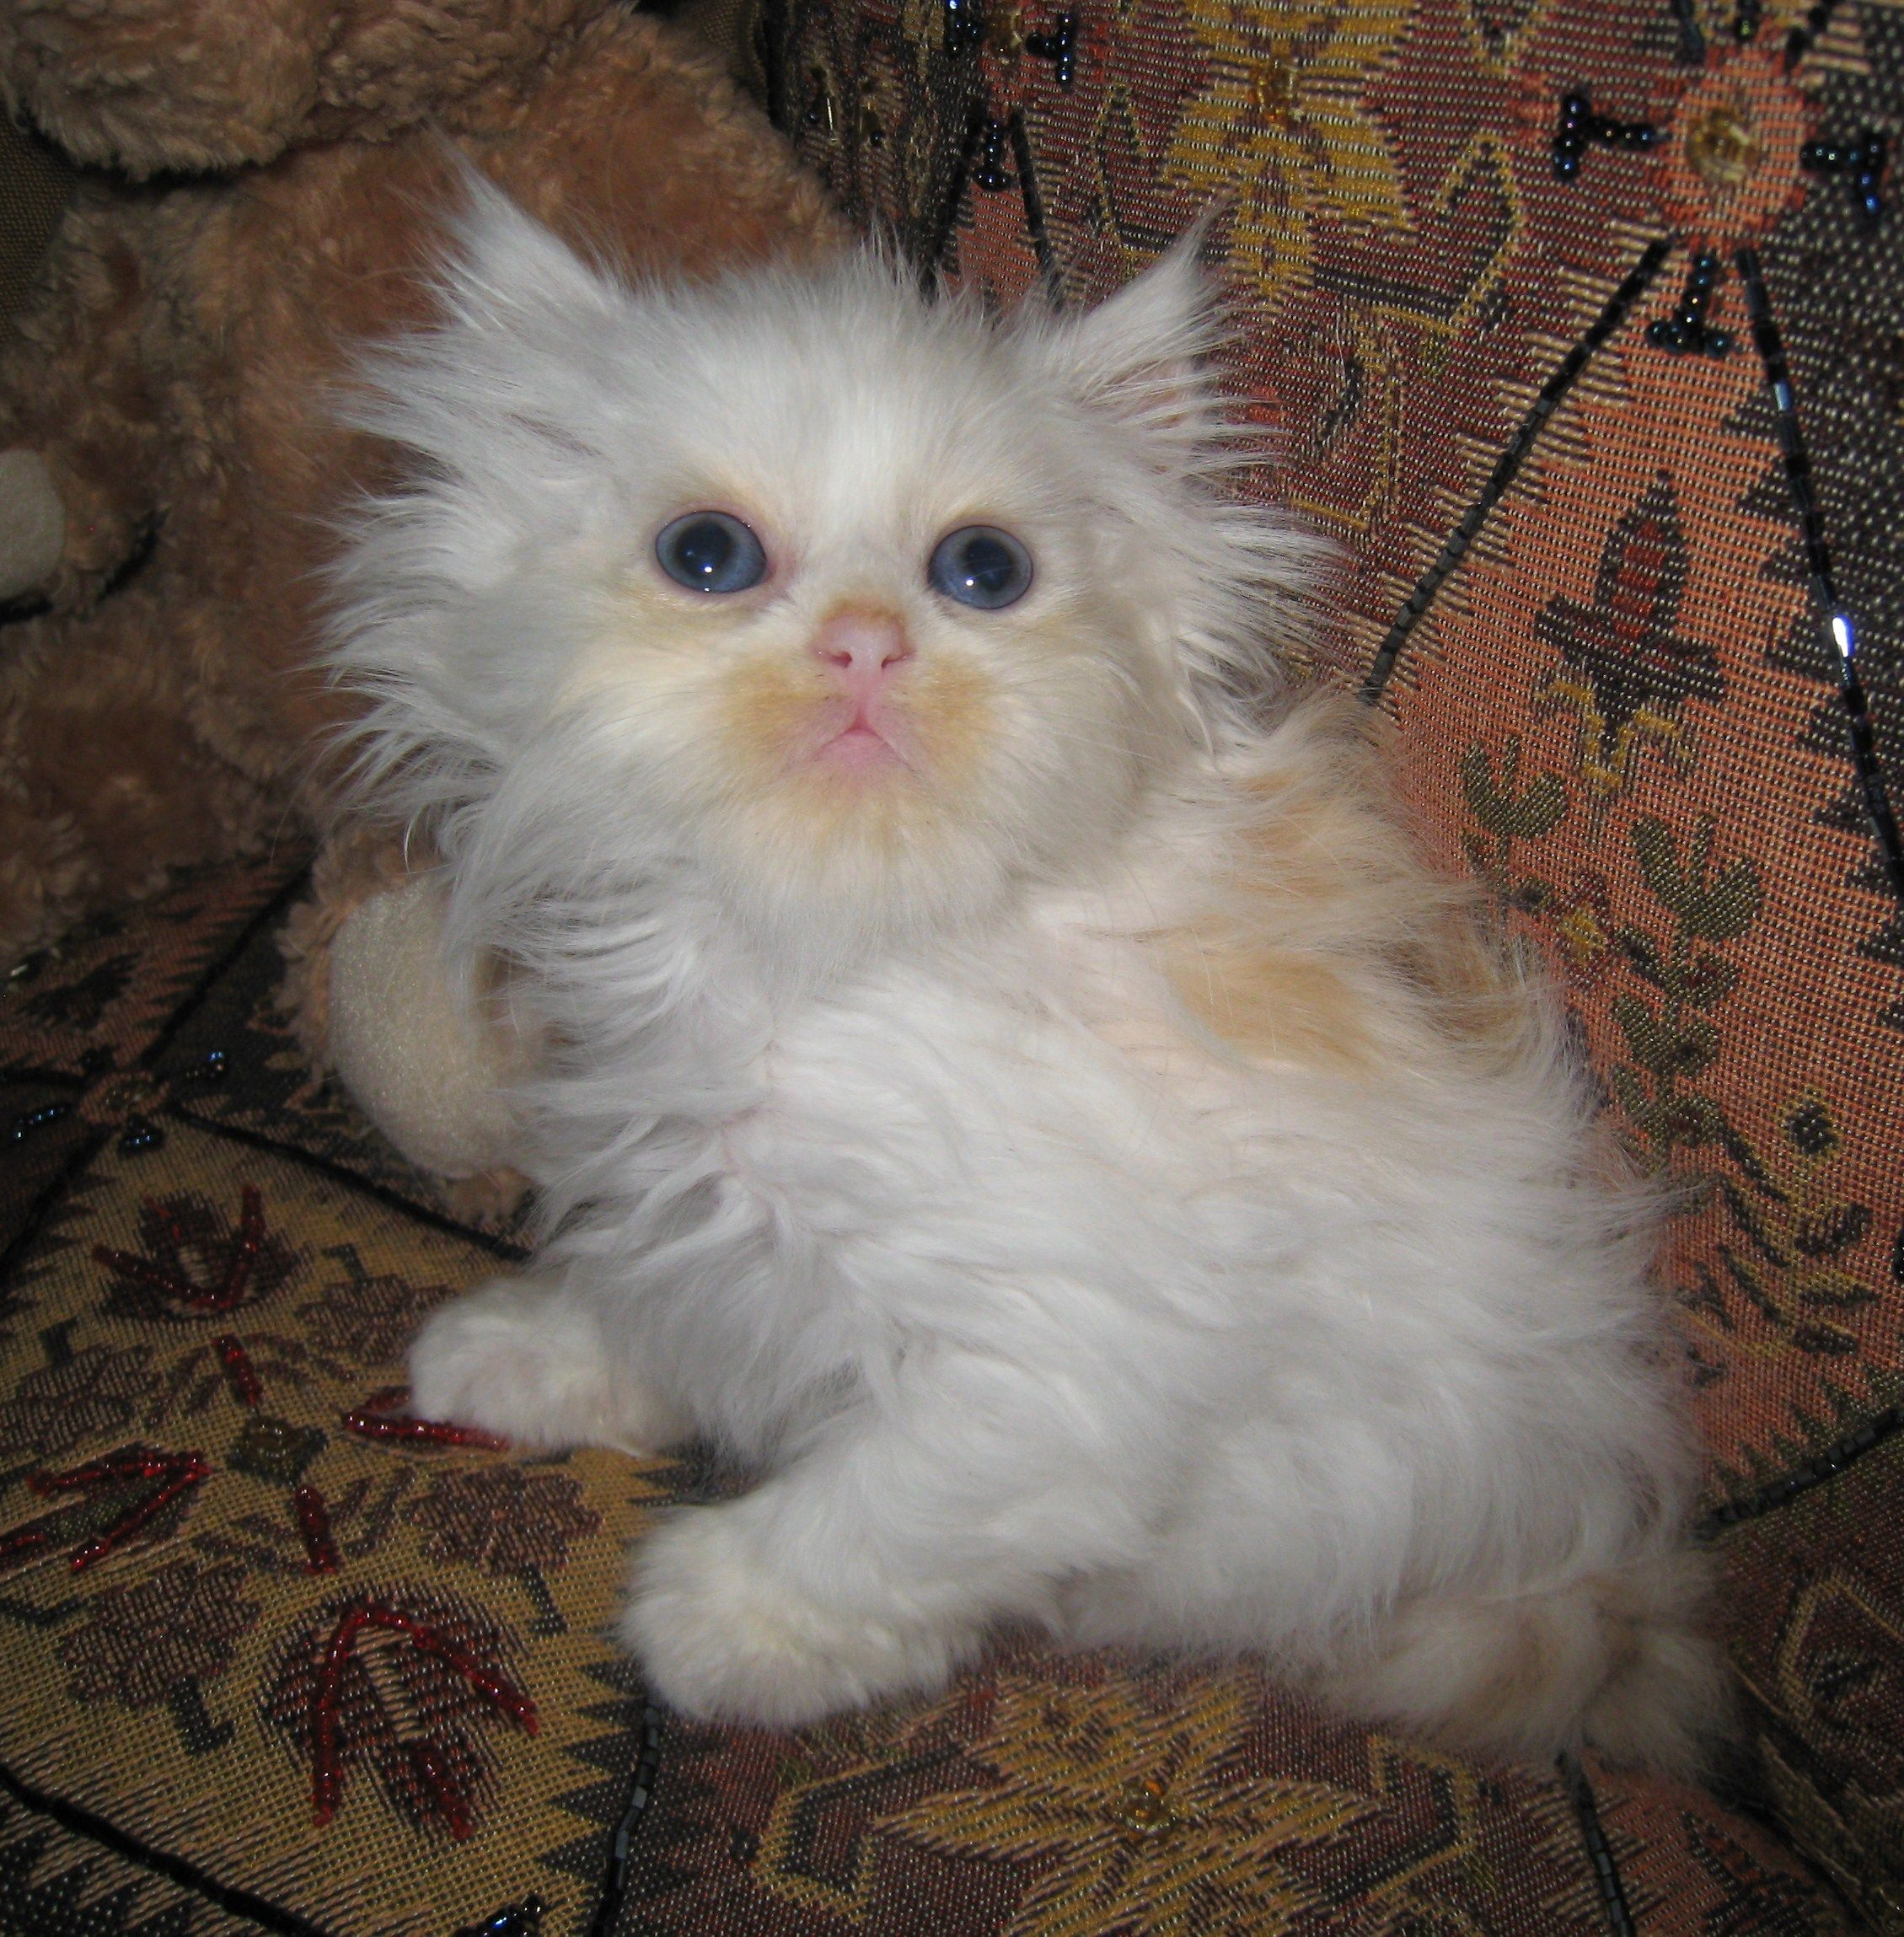 Google Image Result For Http Www Purringangelscattery Com Images Sept8th2010 10 Jpg Baby Animals Teacup Kitten Animals Beautiful